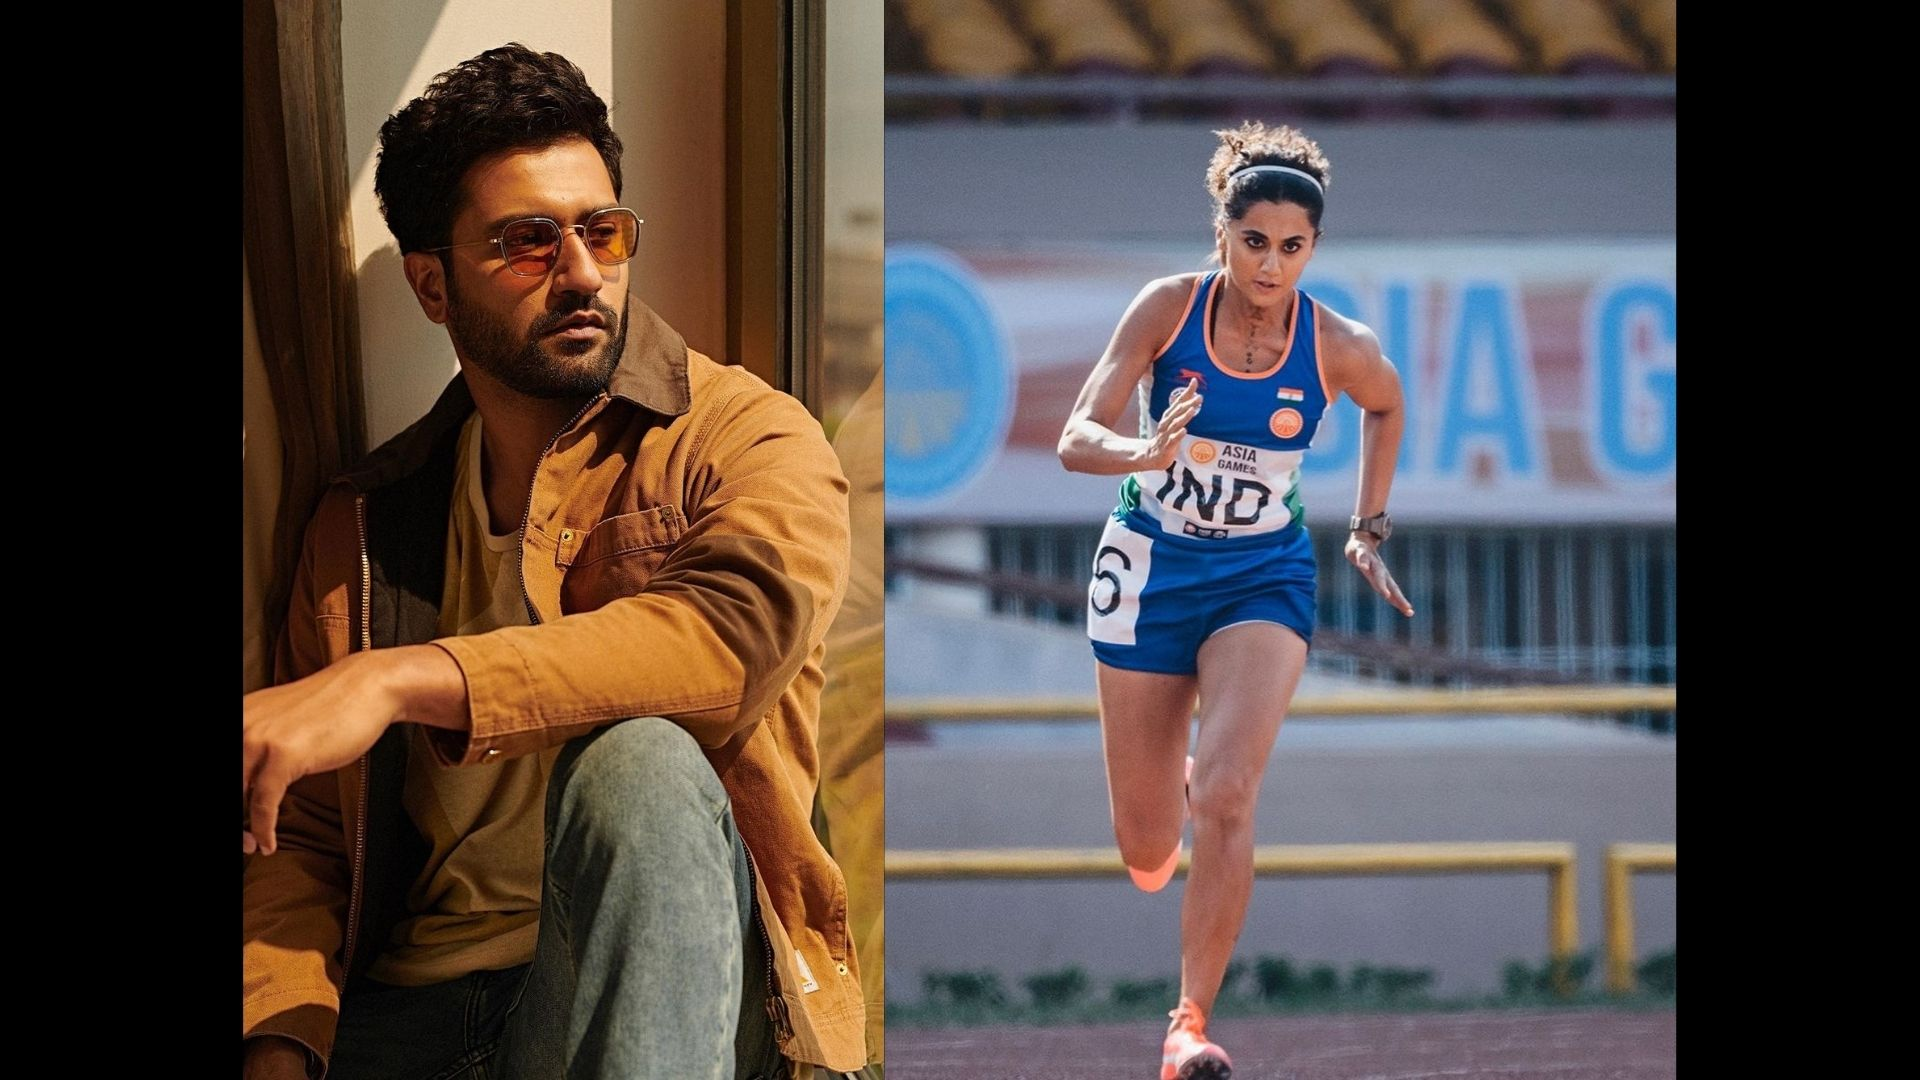 Rashmi Rocket's First Review Out: Vicky Kaushal Has Only Good Things To Say About The Sports Drama